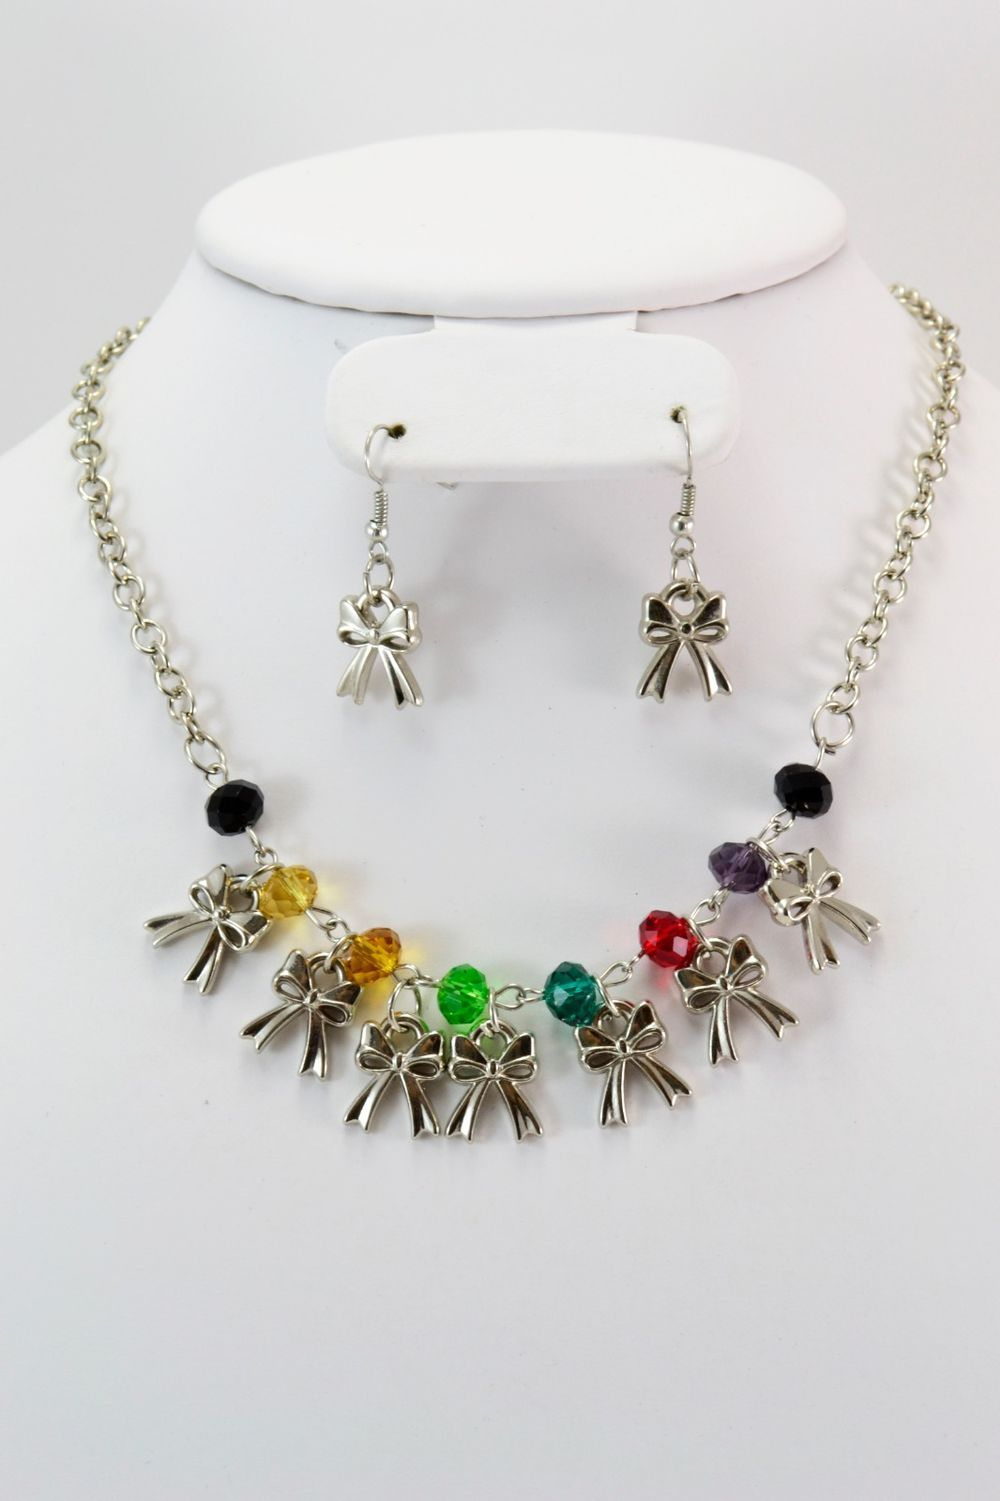 Affordable fashion jewelry reseller Online Fashion Store: Shop for Clothing